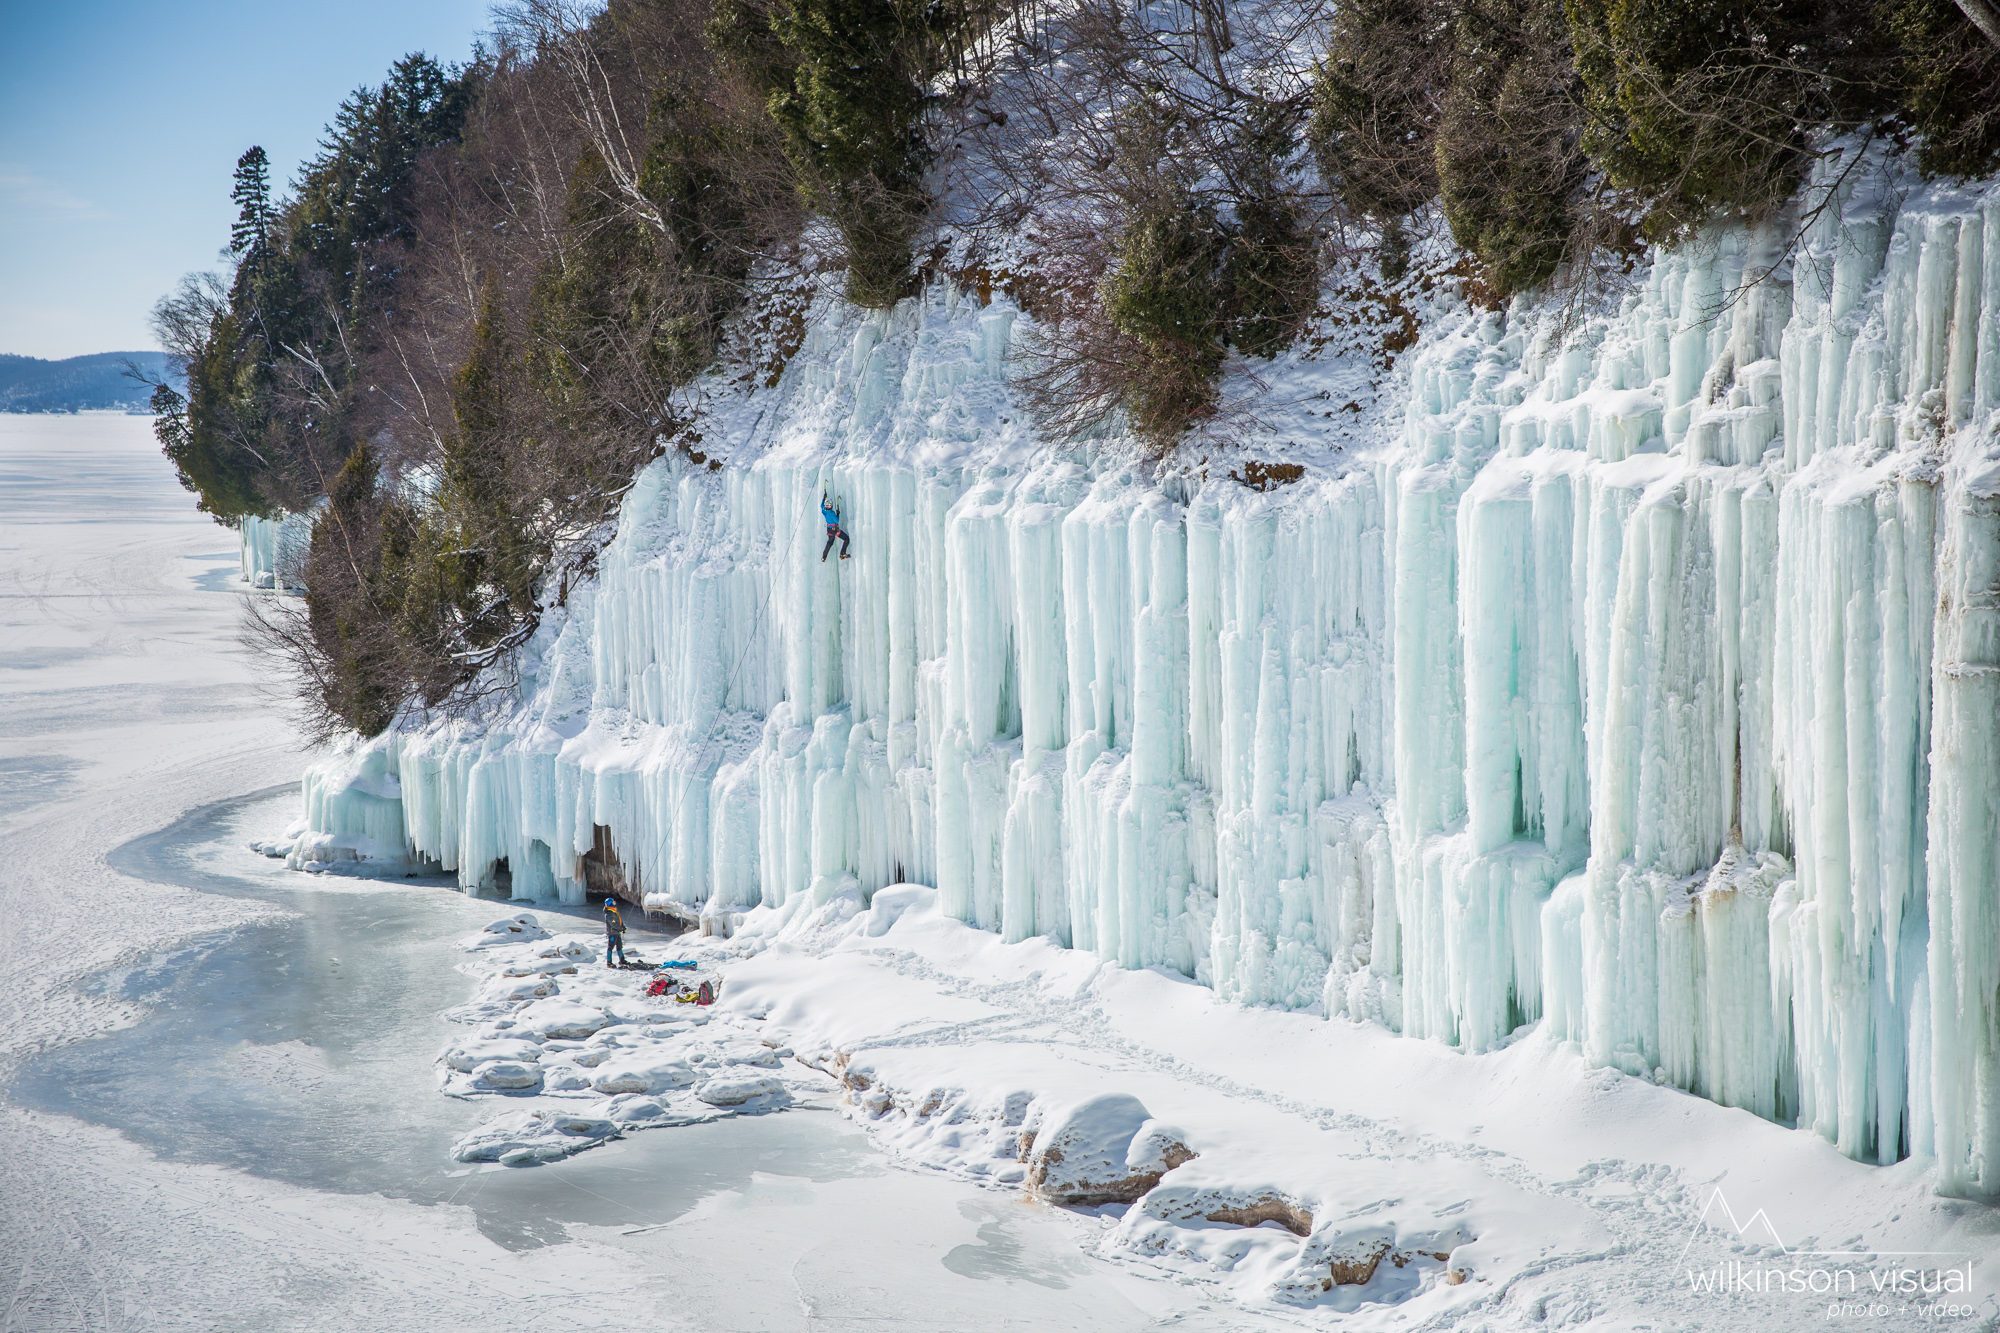 Ice climbers out on Grand Island, Michigan. Climbers shown are Nolan Amos and Kait Roszak.